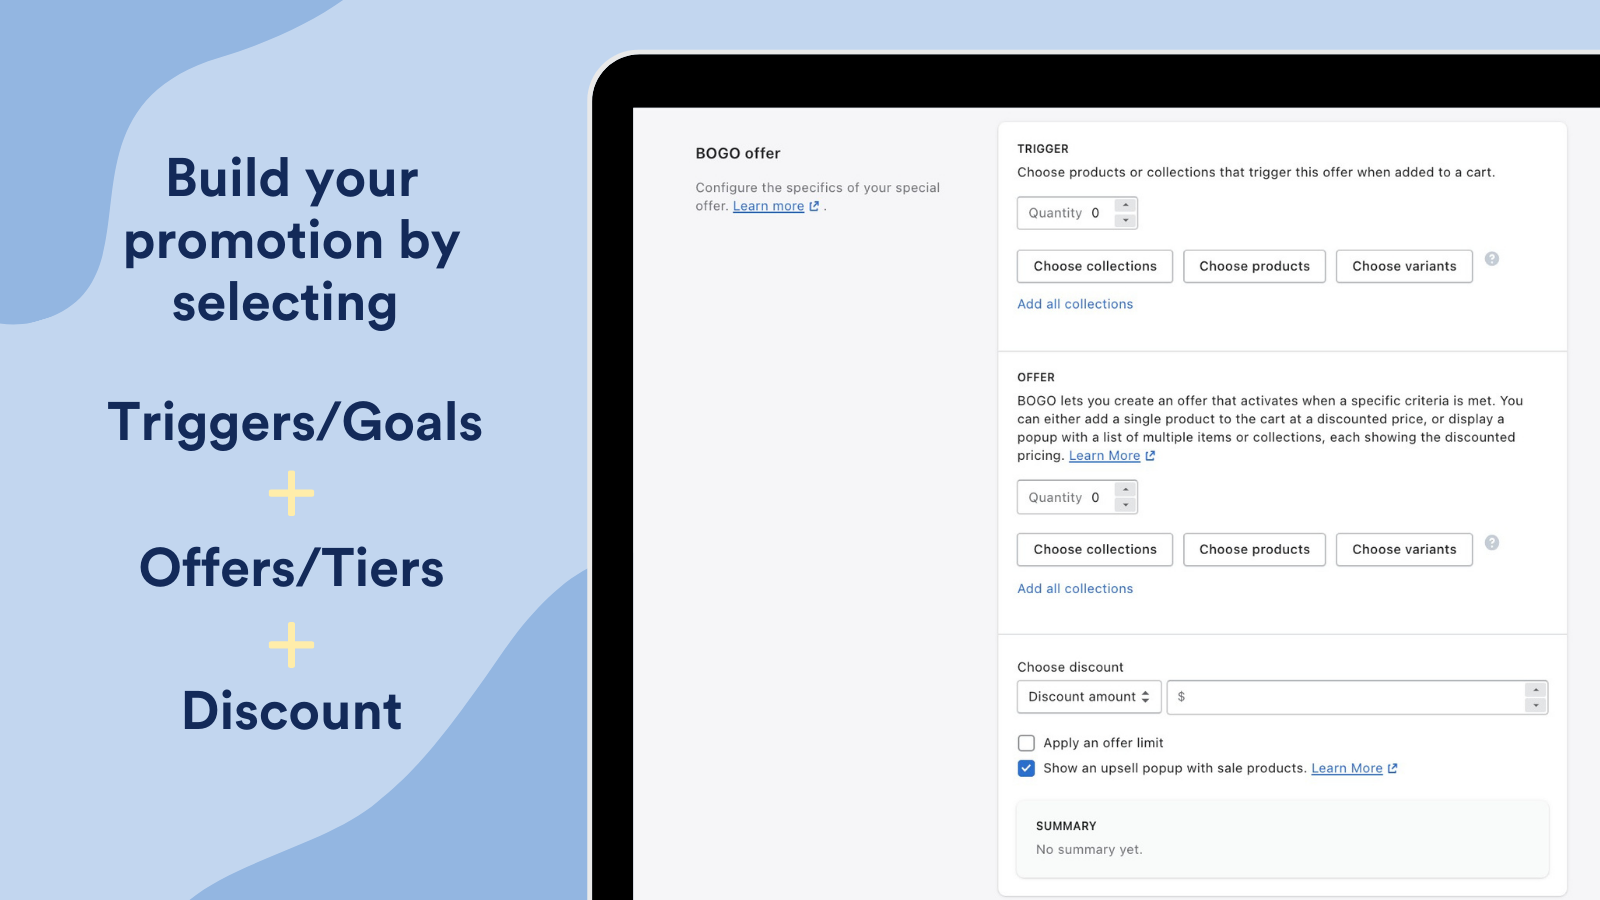 Build your promotion by choosing triggers, offers, and discounts